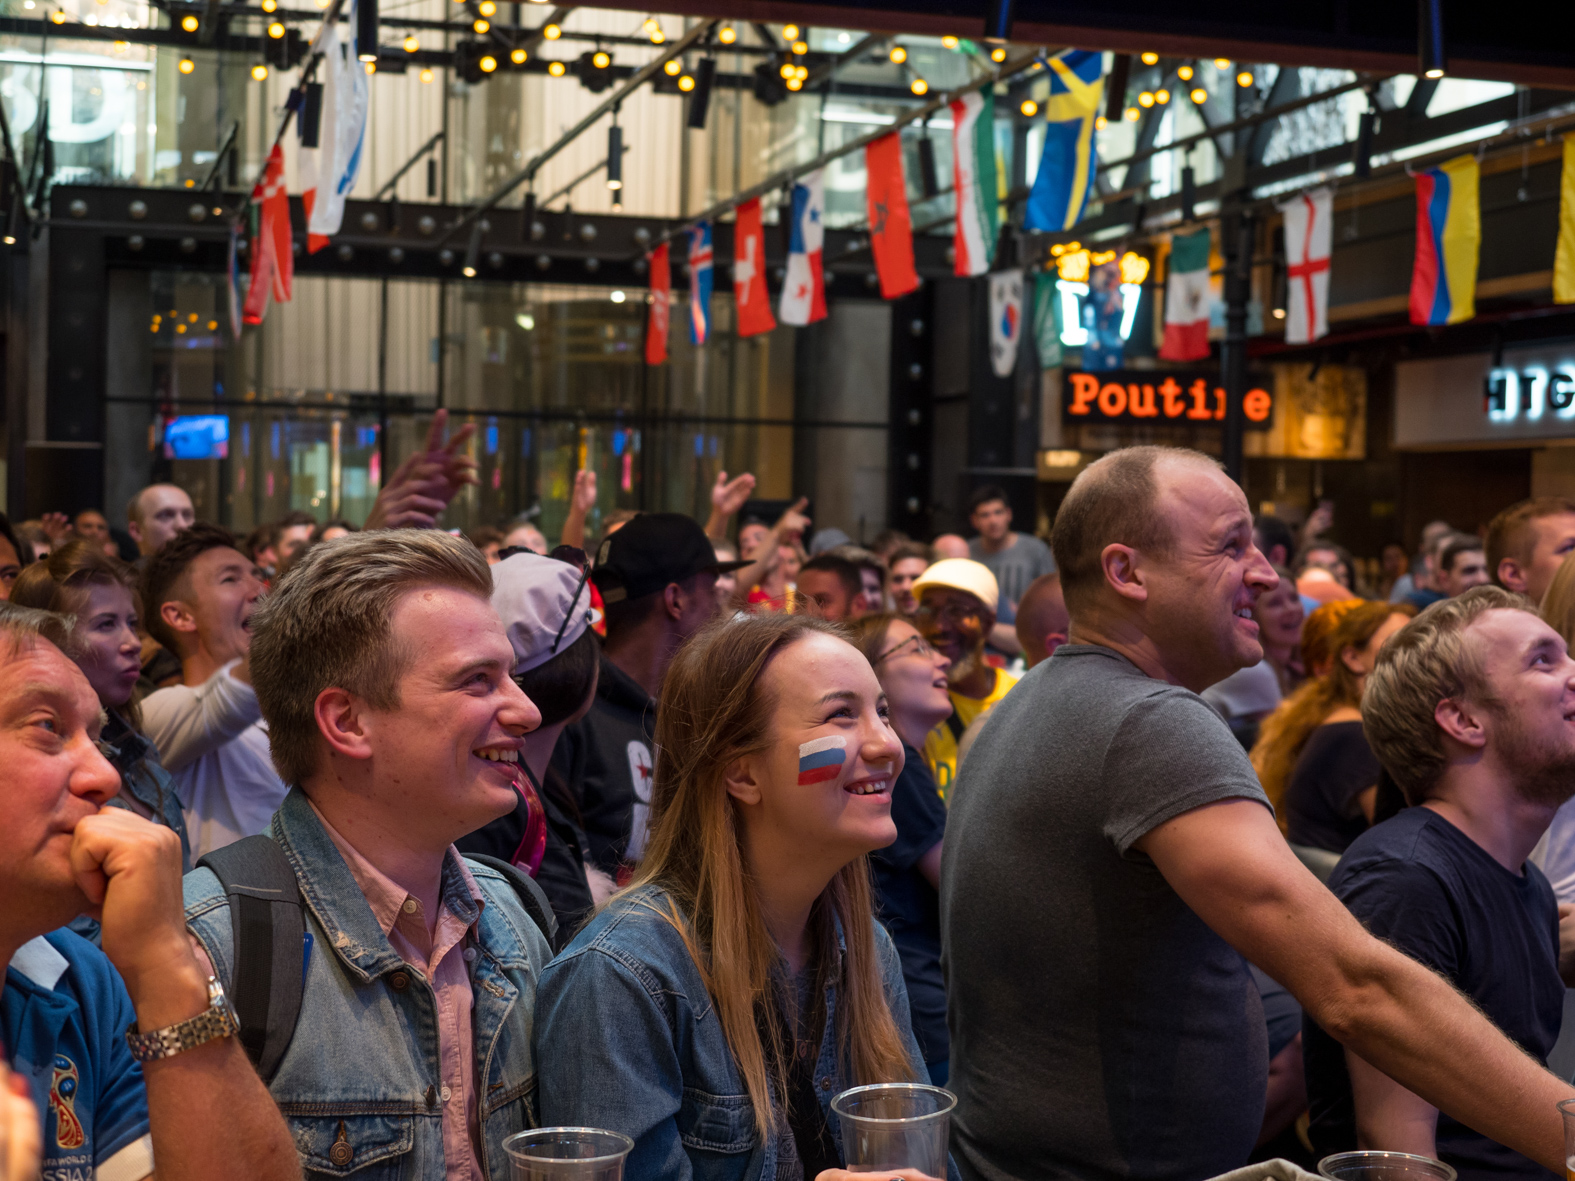 Football fans watch a match on a screen in a central Moscow bar. The 21st FIFA World Cup football tournament took place in Russia in 2018. It was the first World Cup to be held in Eastern Europe and the eleventh time that it has been held in Europe. For the first time the tournament took place on two continents – Europe and Asia. All but two of the stadium venues were in European Russia.